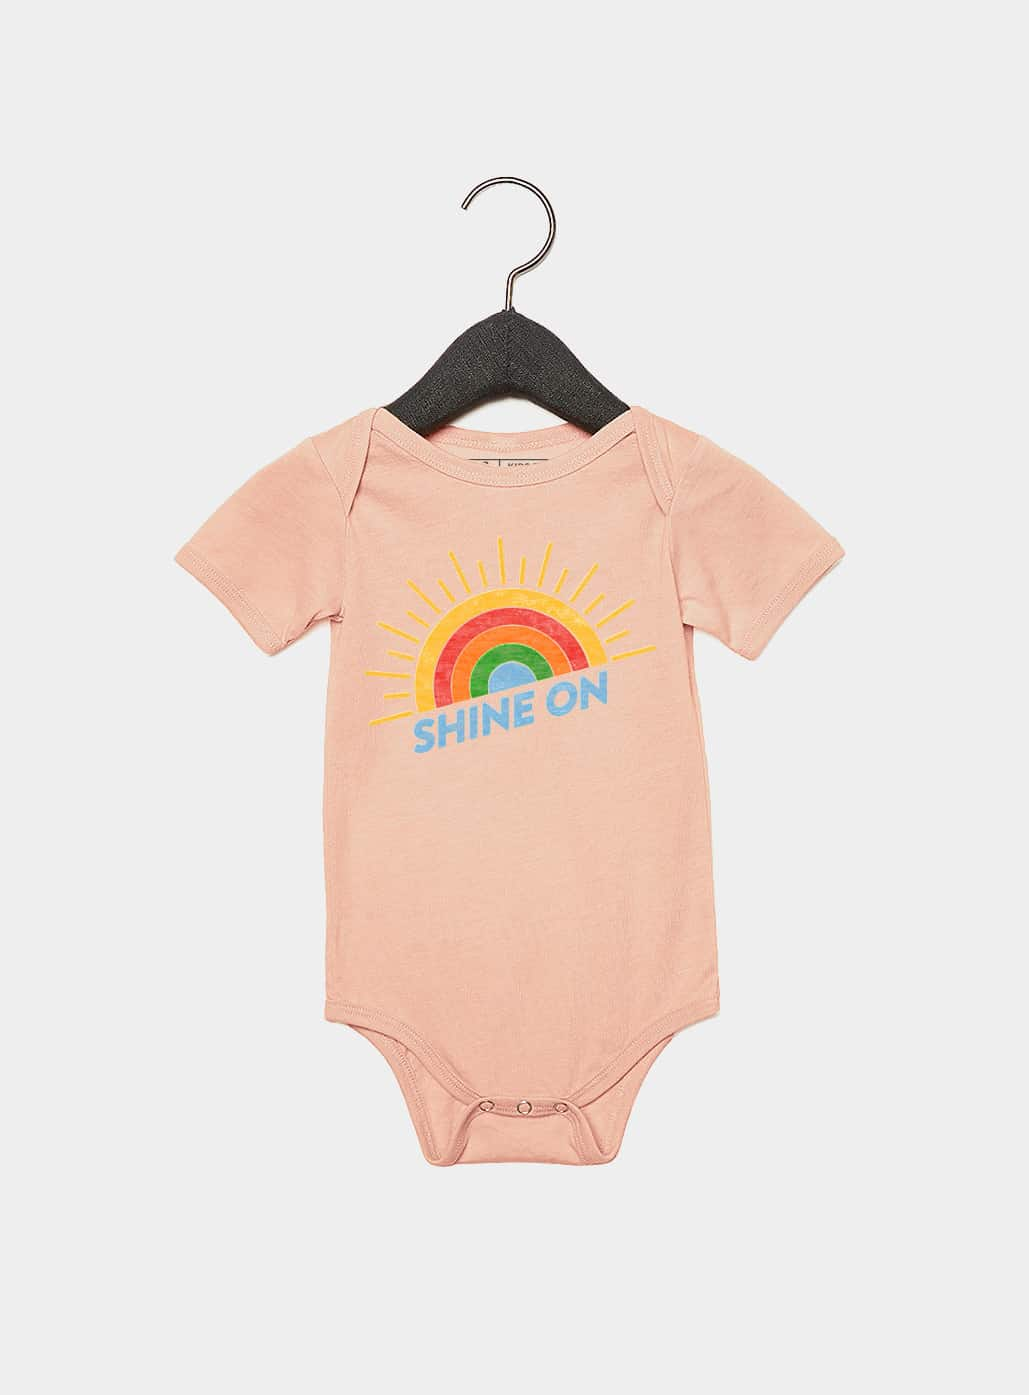 Shine On Kids Onesie